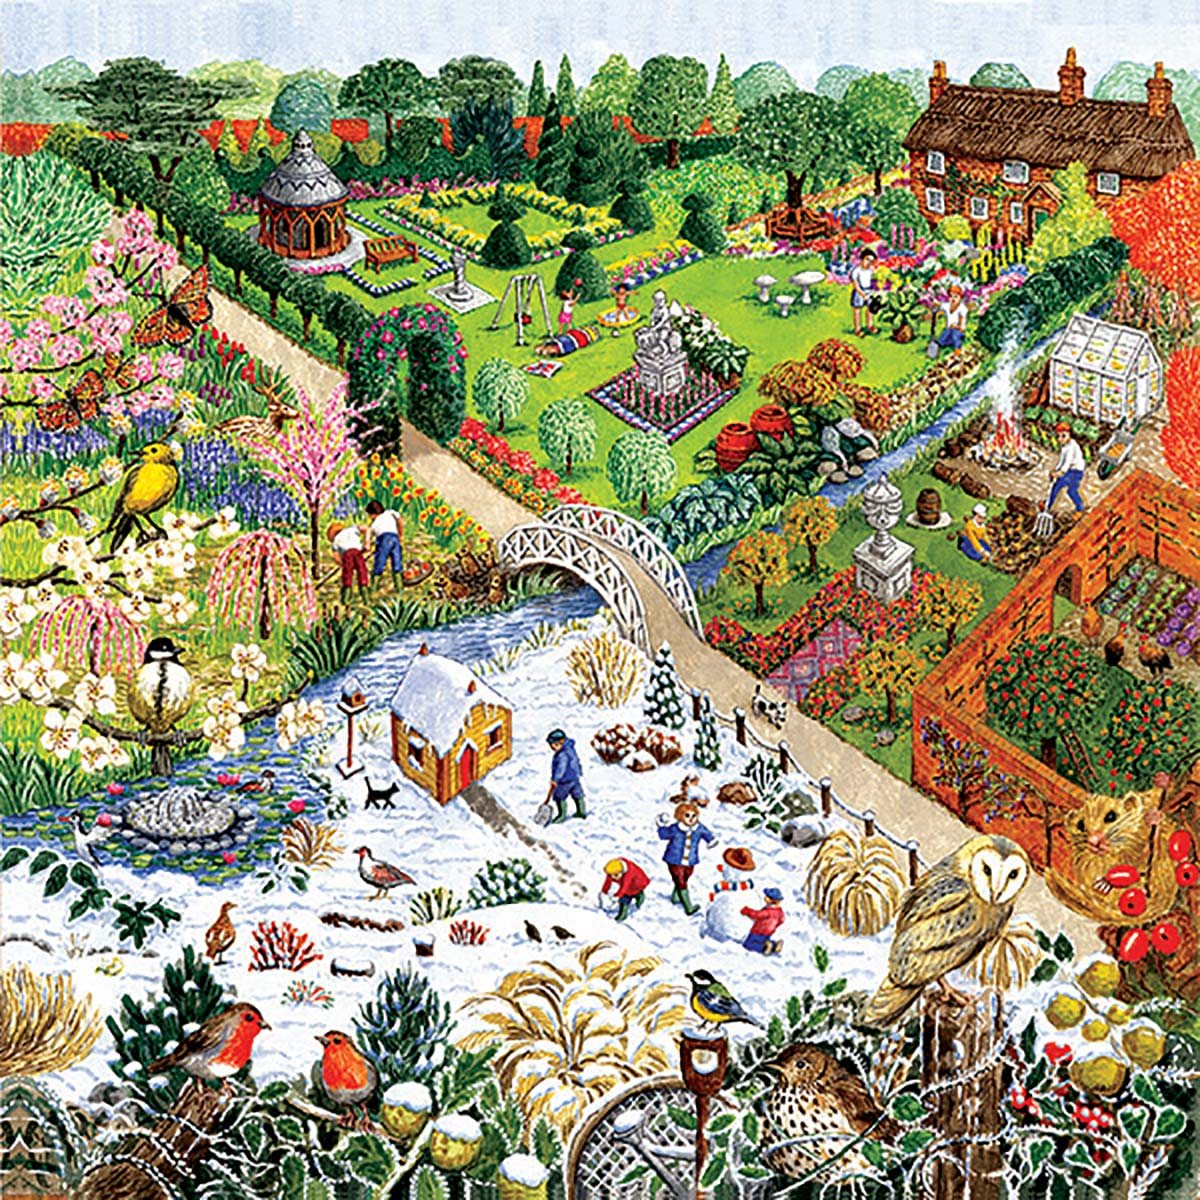 Four Seasons Garden Garden Jigsaw Puzzle